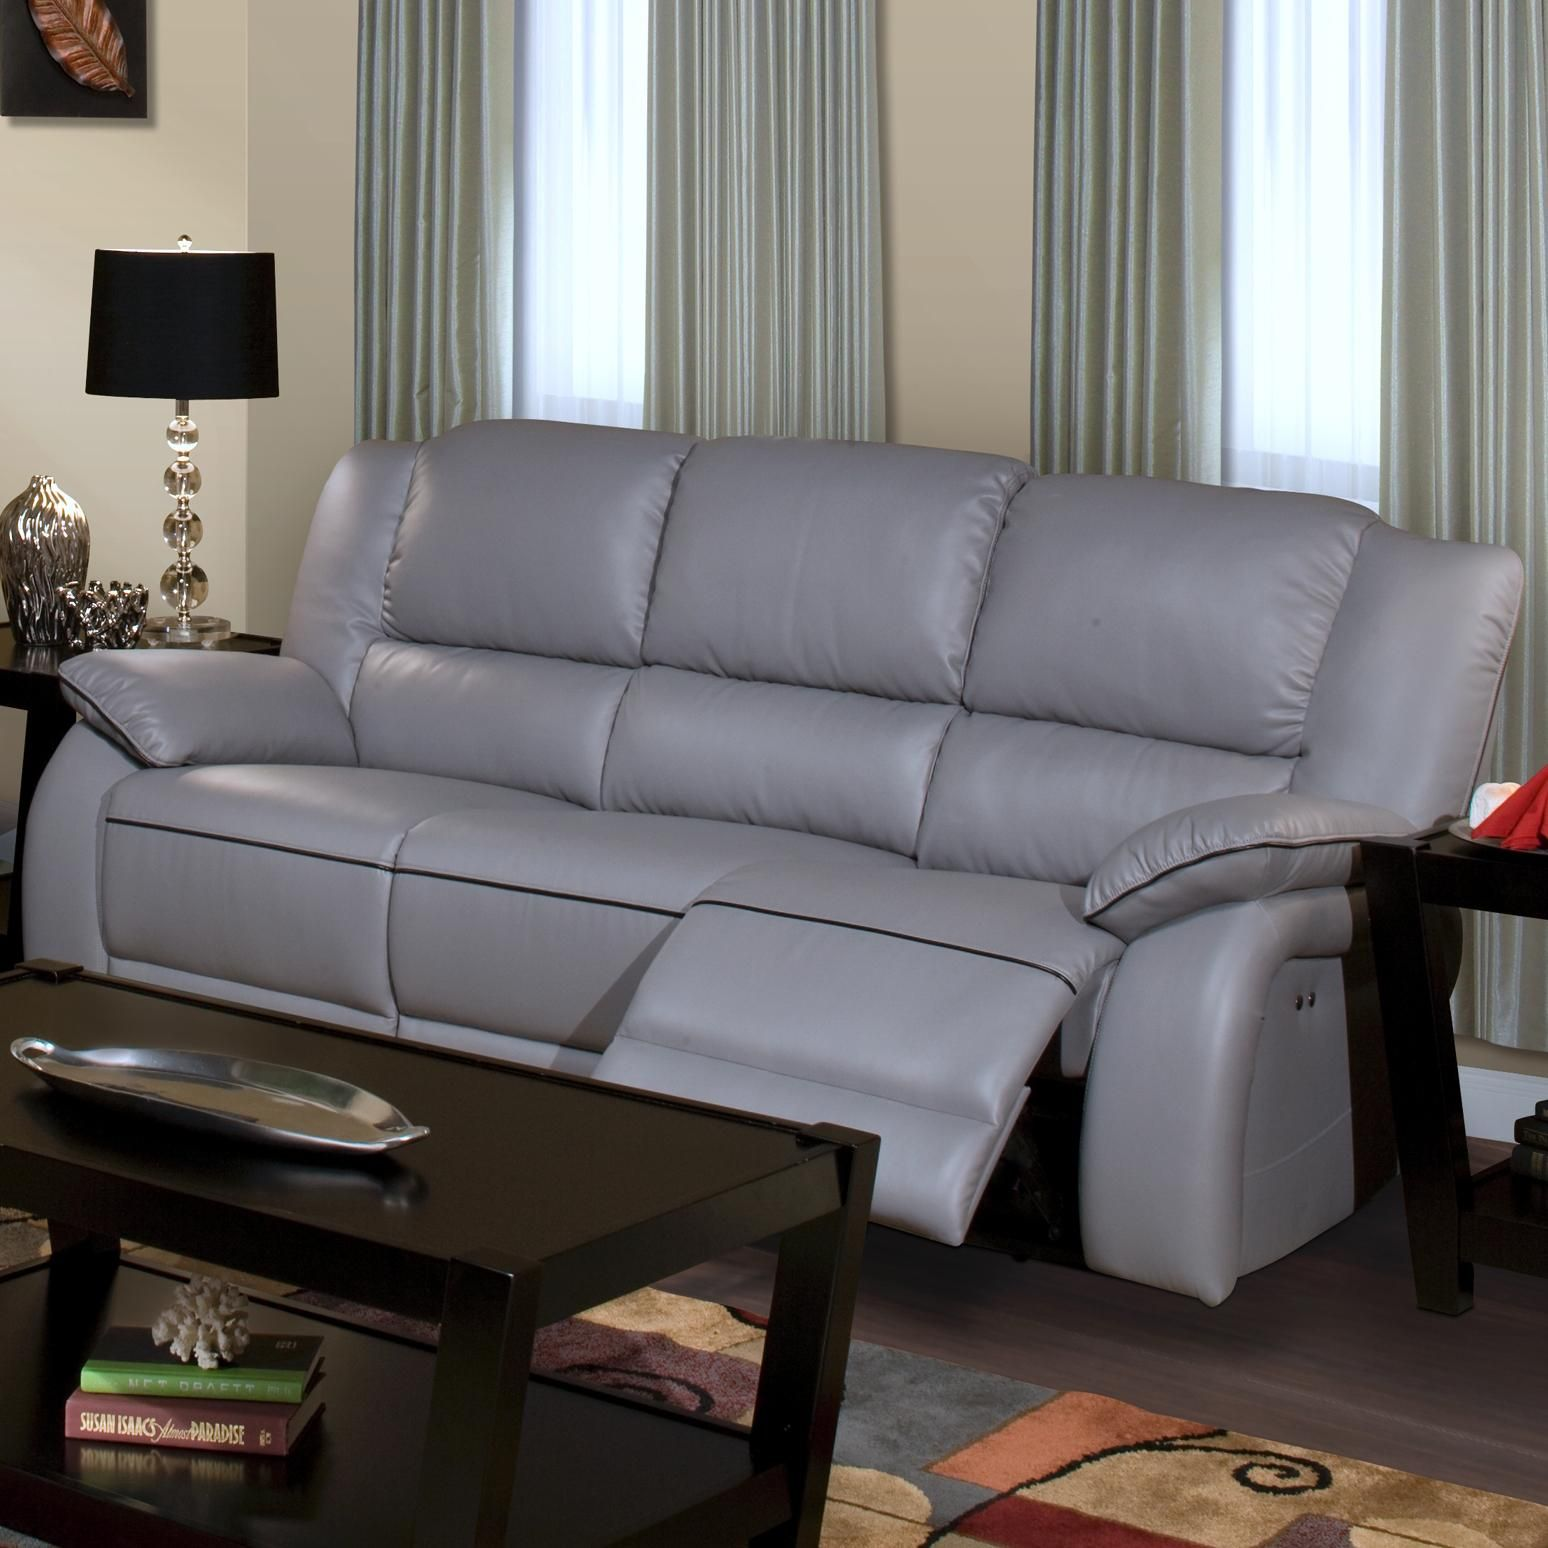 Grey Power Reclining Sofa Sofas Under 2000 Pin By Pamela Burrell On Our Basement Ideas Pinterest Recliner Leather Best Chair Furniture